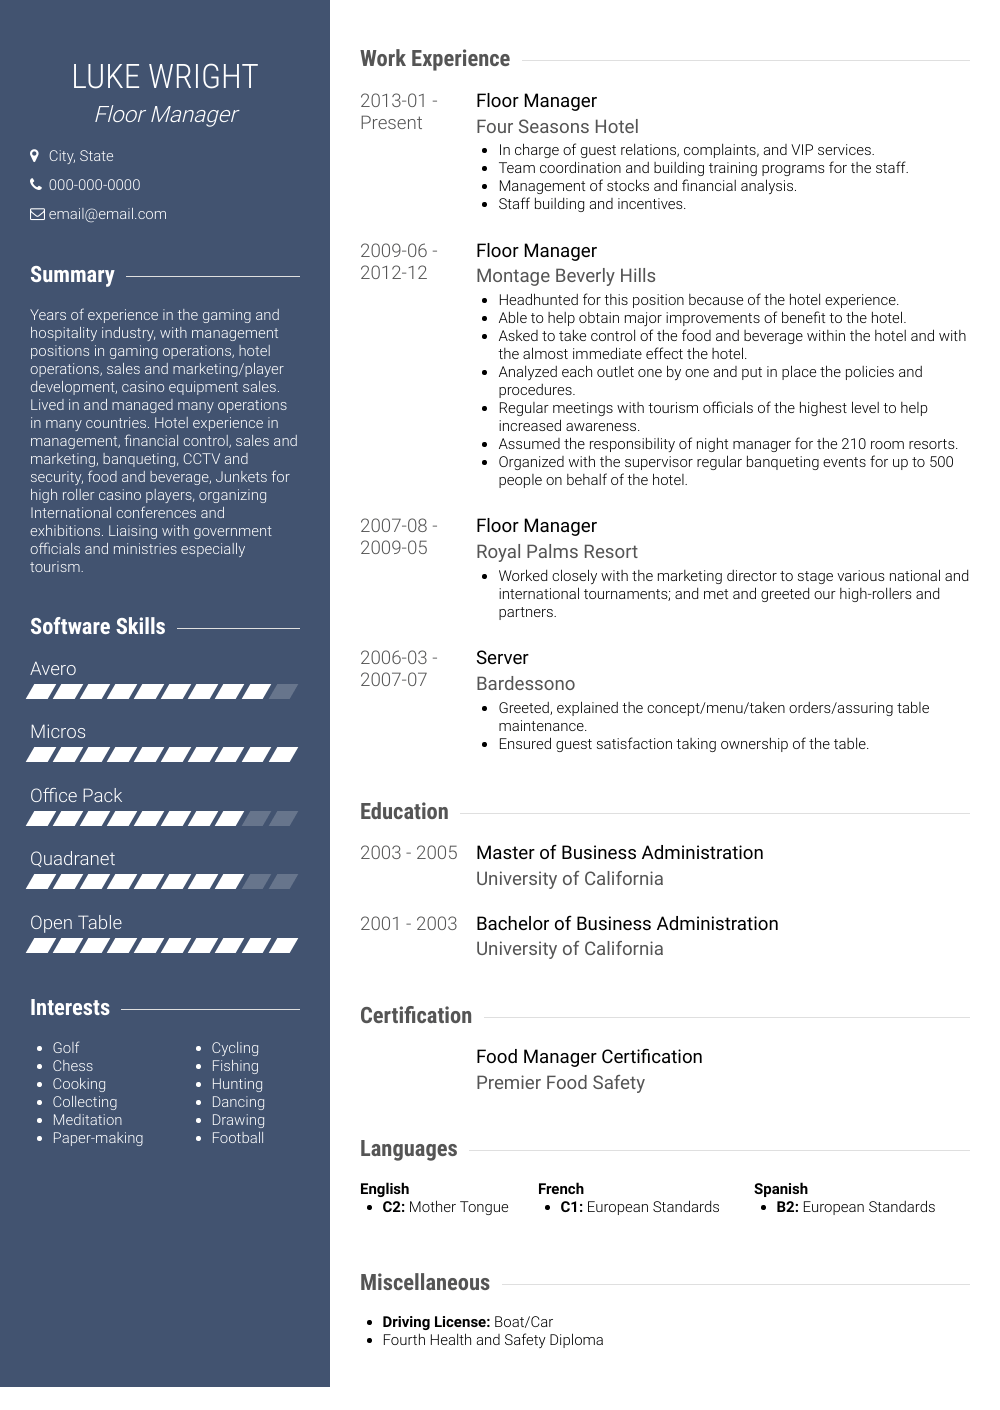 Floor Manager Resume Sample and Template